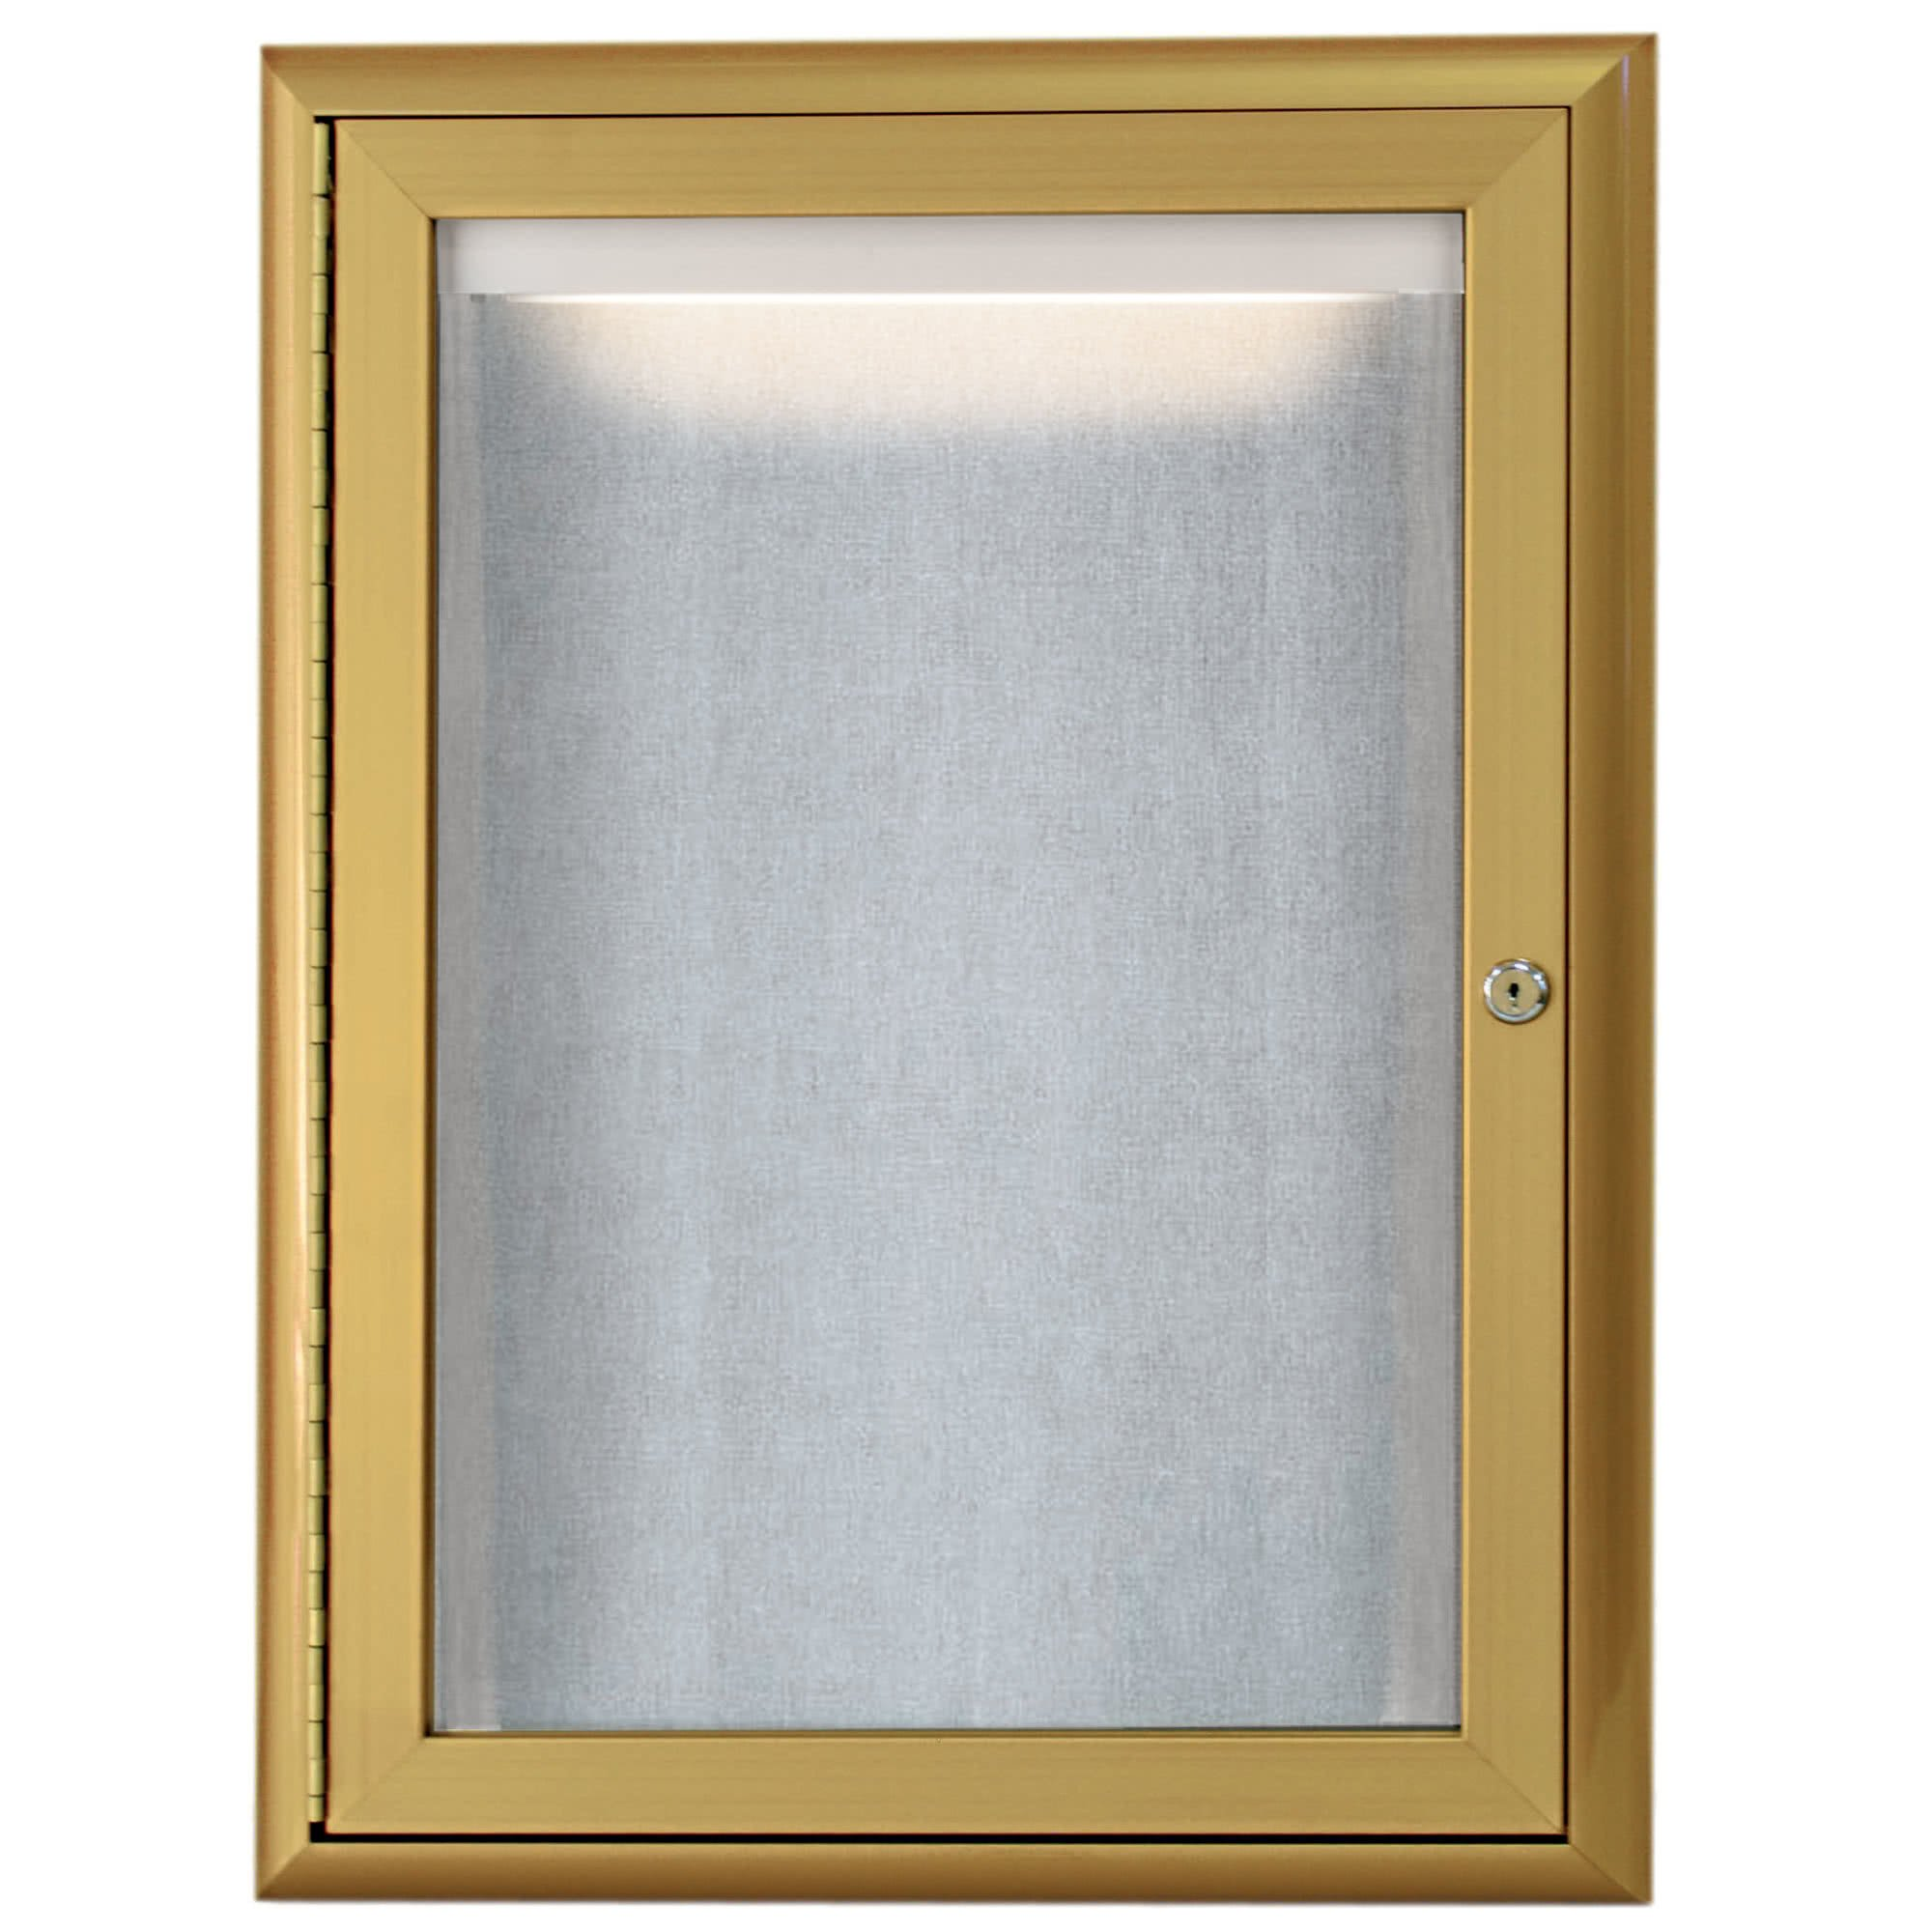 TableTop King LOWFC2418G 24'' x 18'' Gold Enclosed Aluminum Indoor / Outdoor Bulletin Board with Waterfall Style Frame and LED Lighting